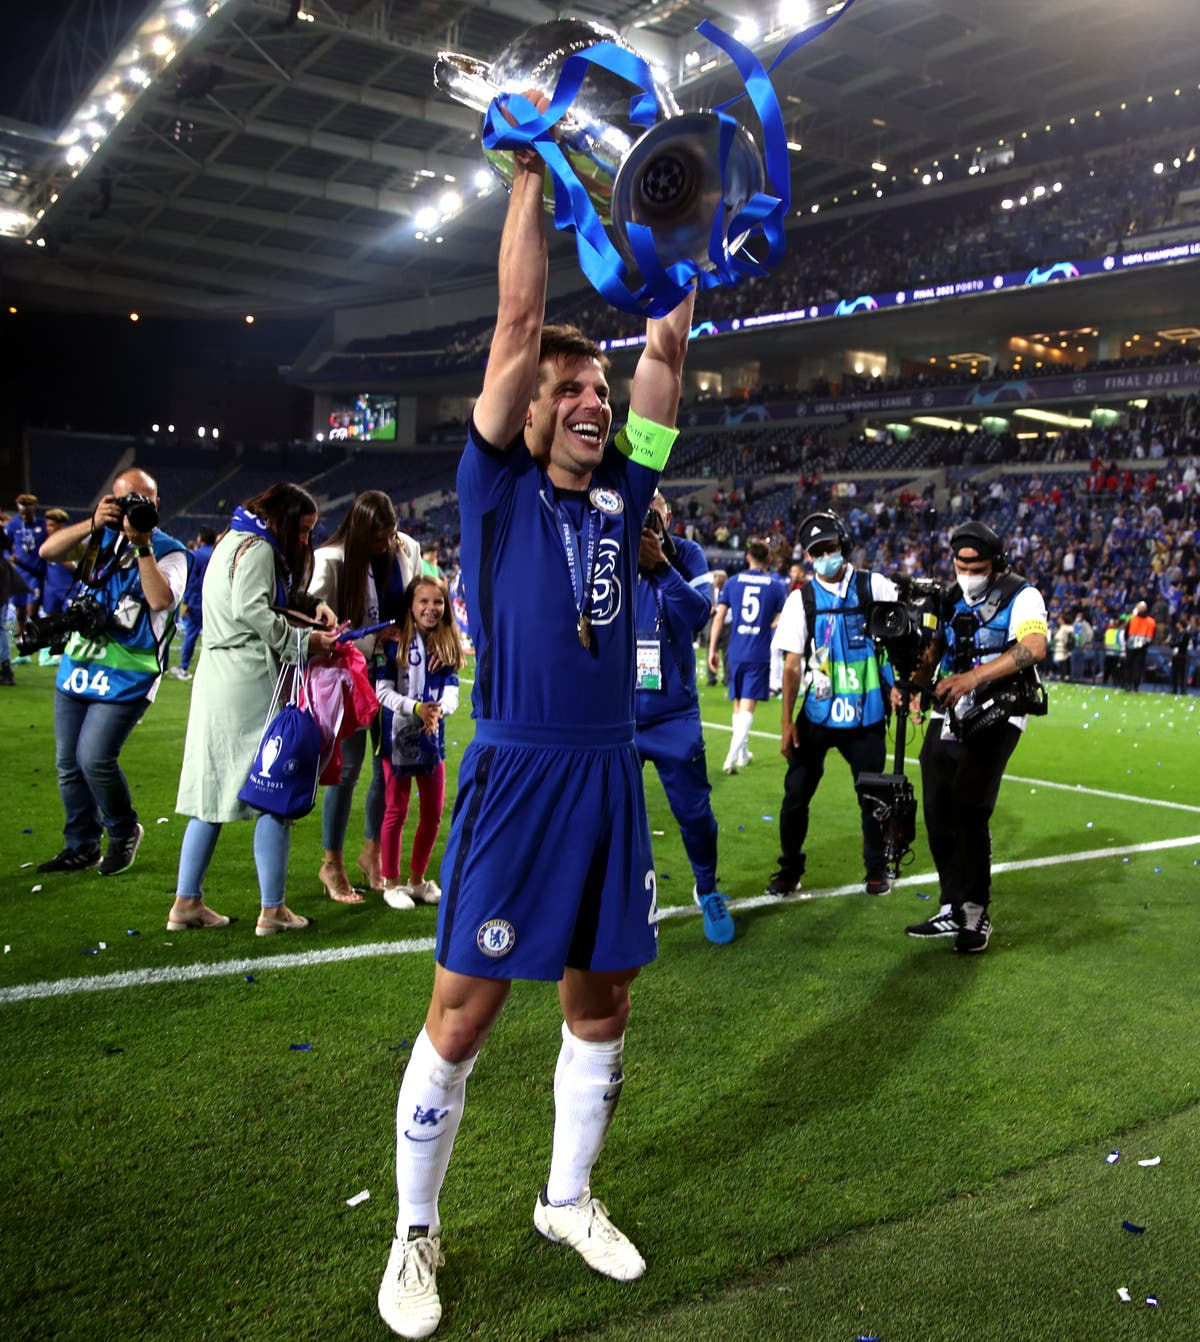 It is amazing – Cesar Azpilicueta elated to lift first trophy as Chelsea captain